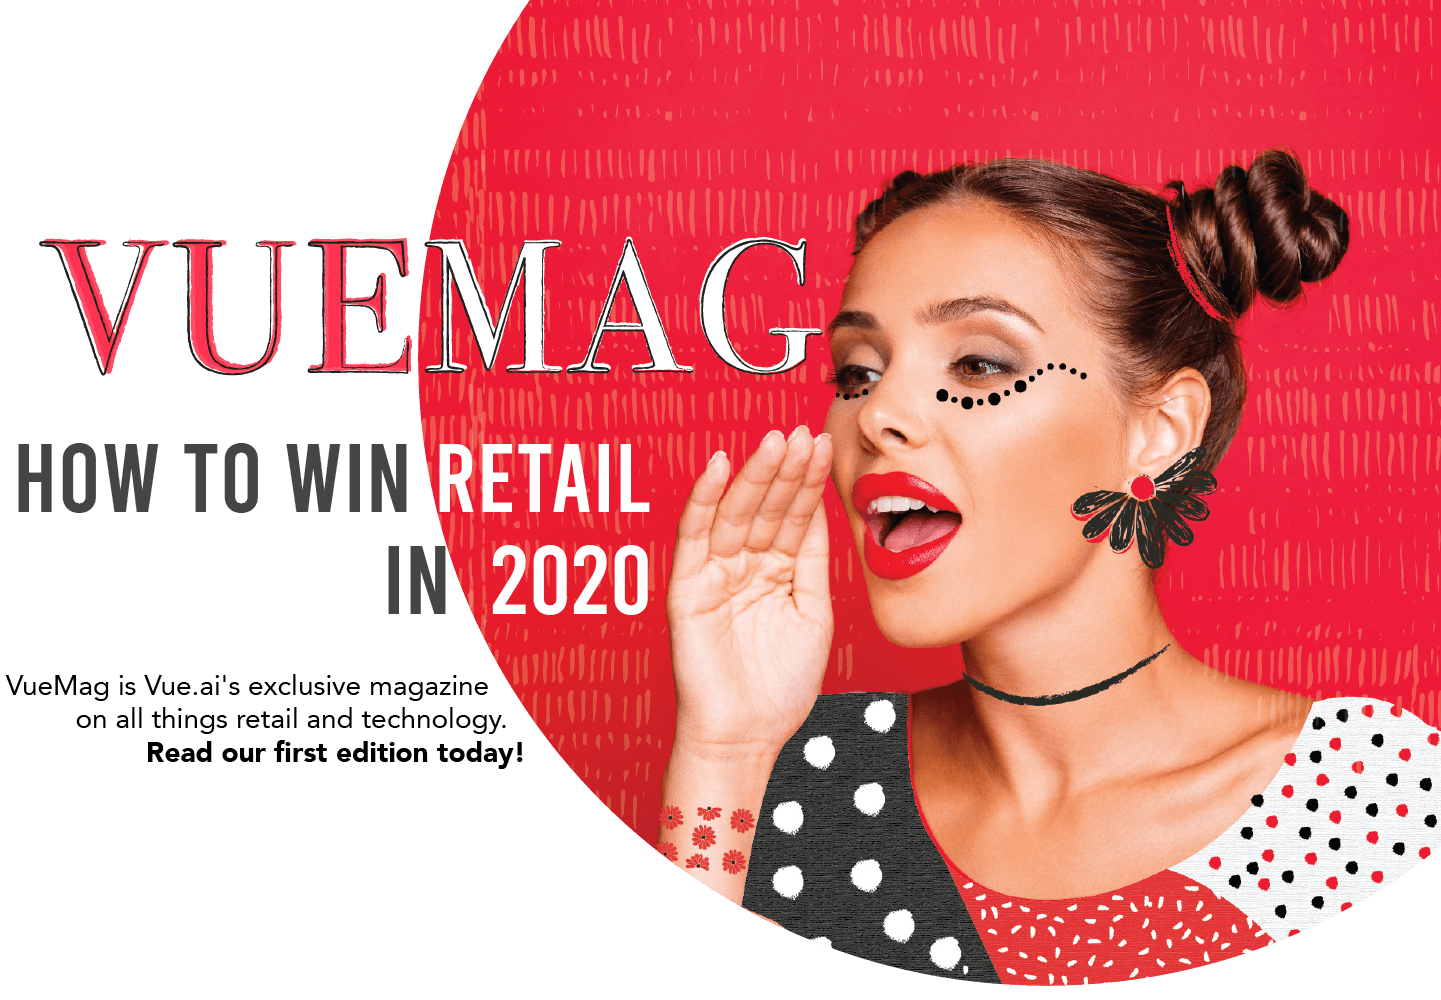 How to win retail in 2020